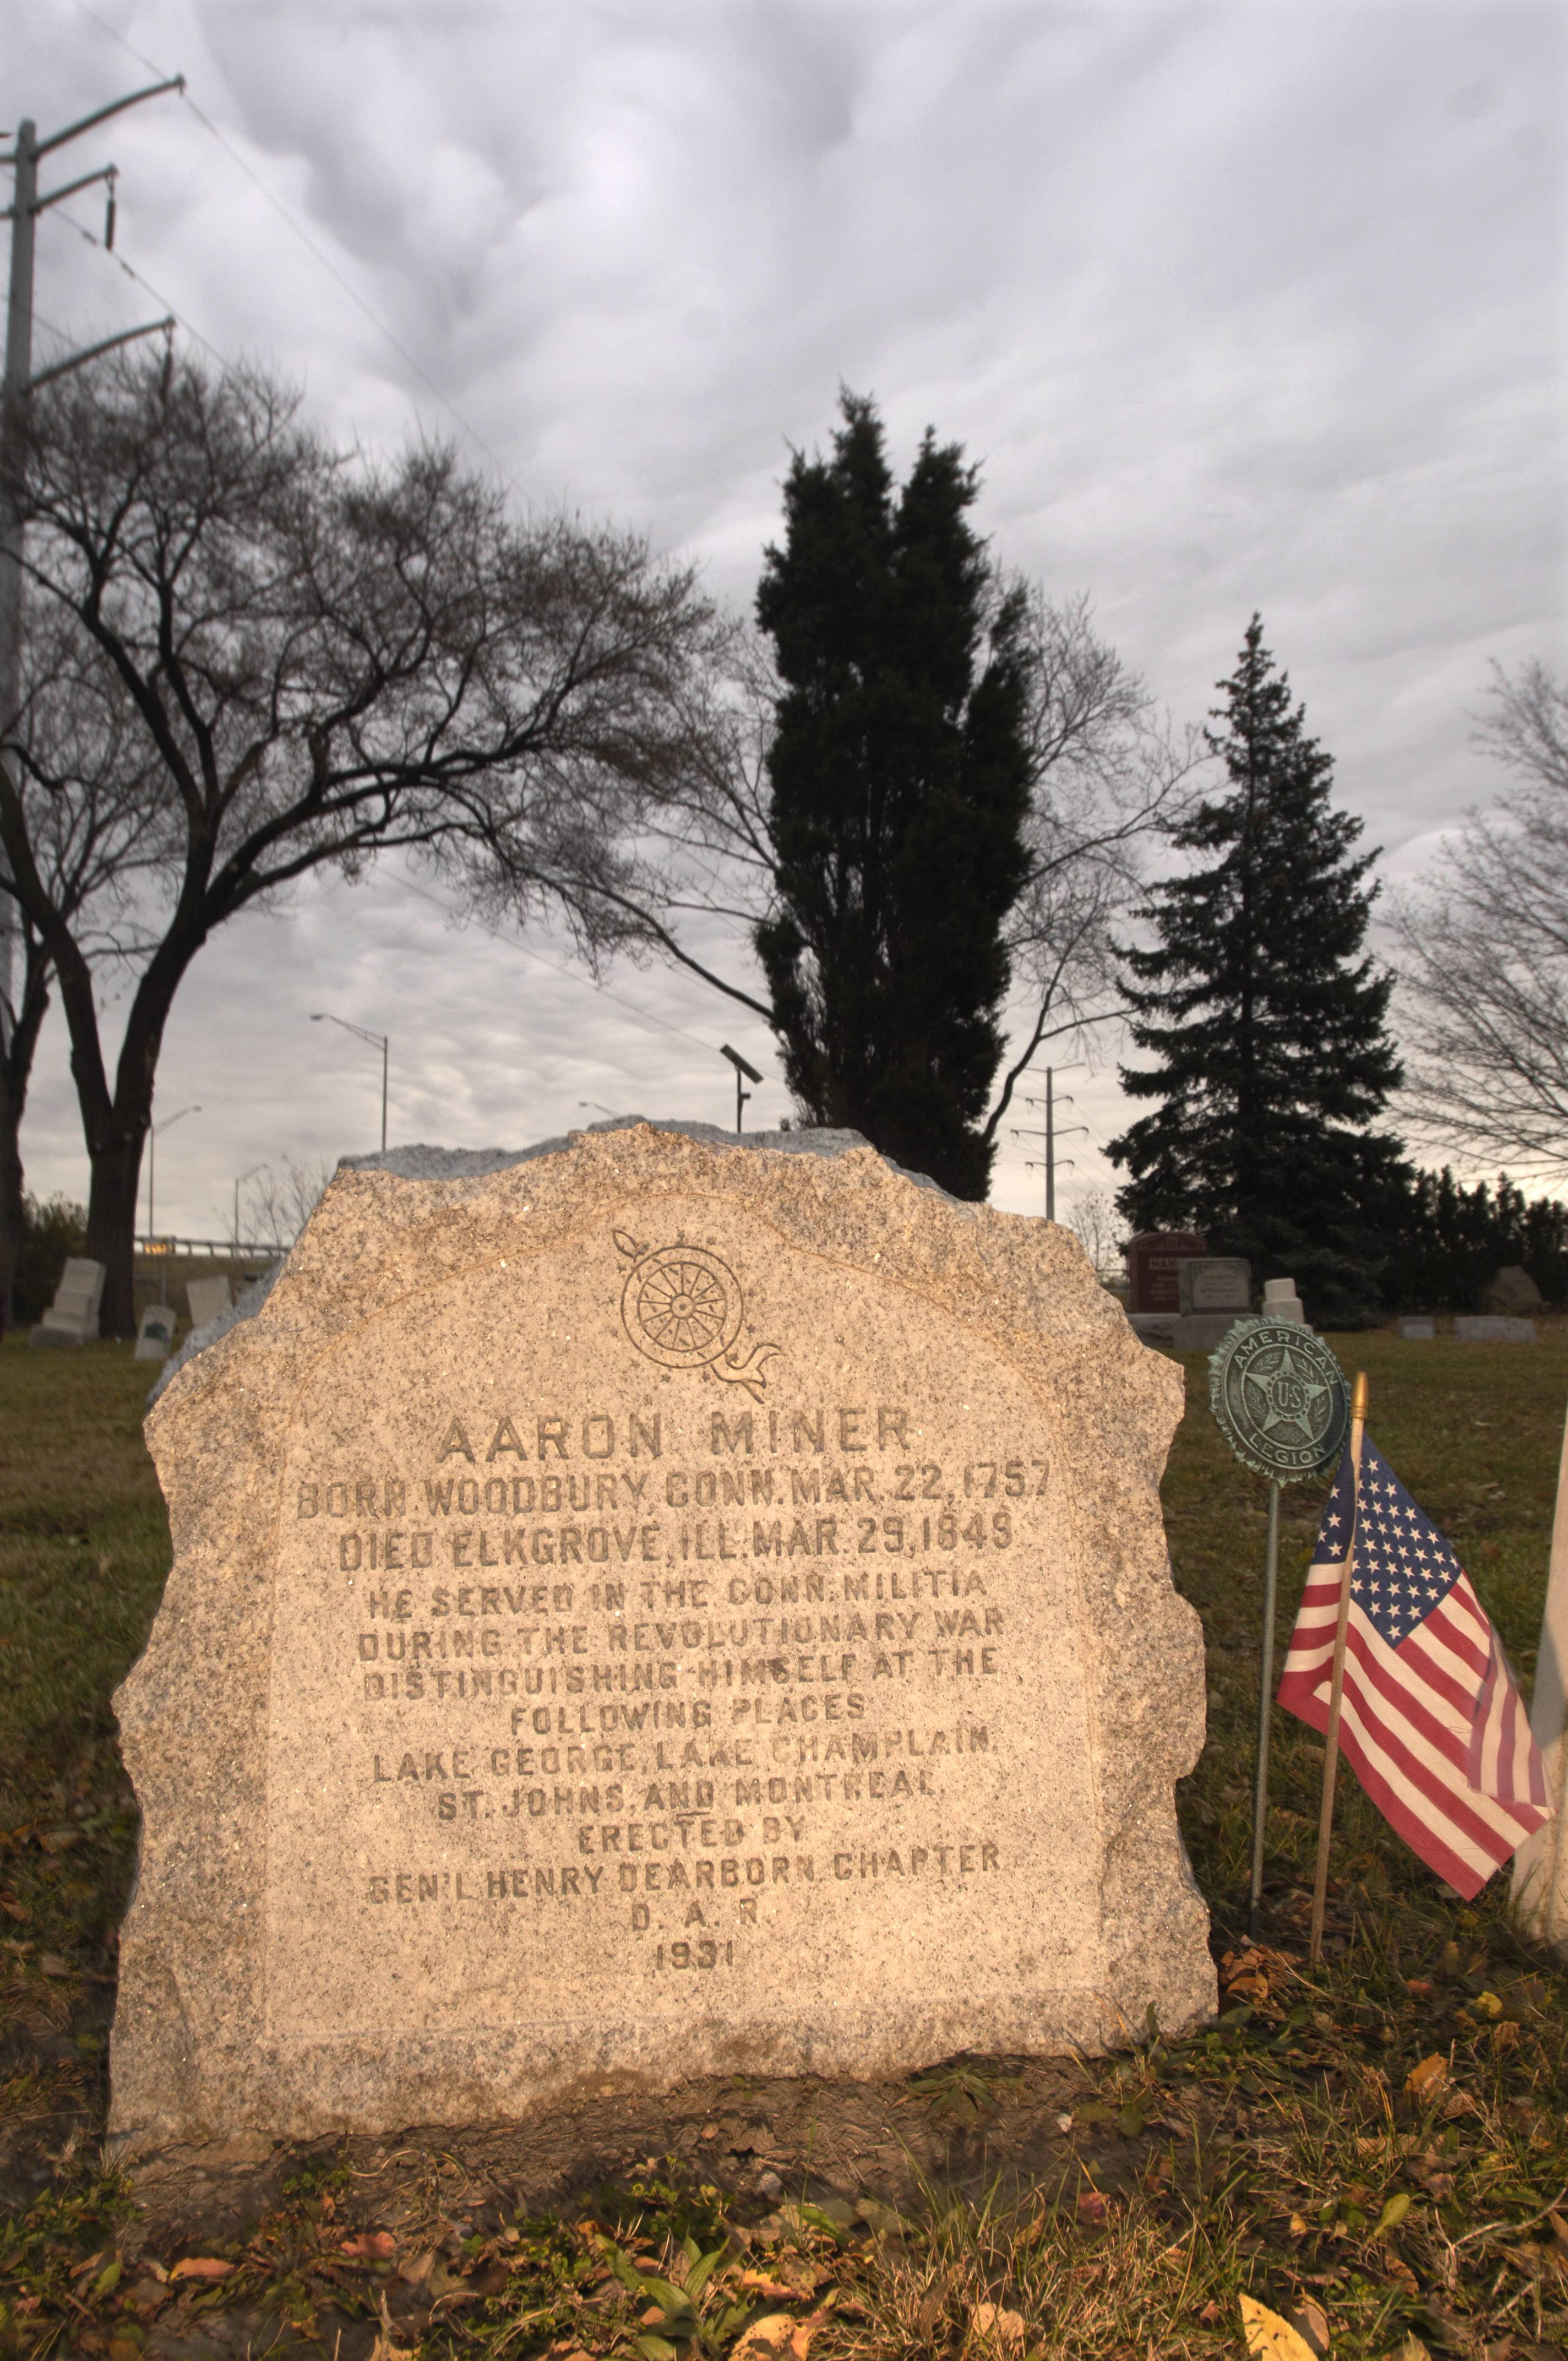 A gravestone at Elk Grove Cemetery recognizes Revolutionary War veteran Aaron Miner. The Illinois Sons of the American Revolution plan to install a historical marker at the cemetery to recognize Miner and another Revolutionary War figure, Eli Skinner, who is also buried there.